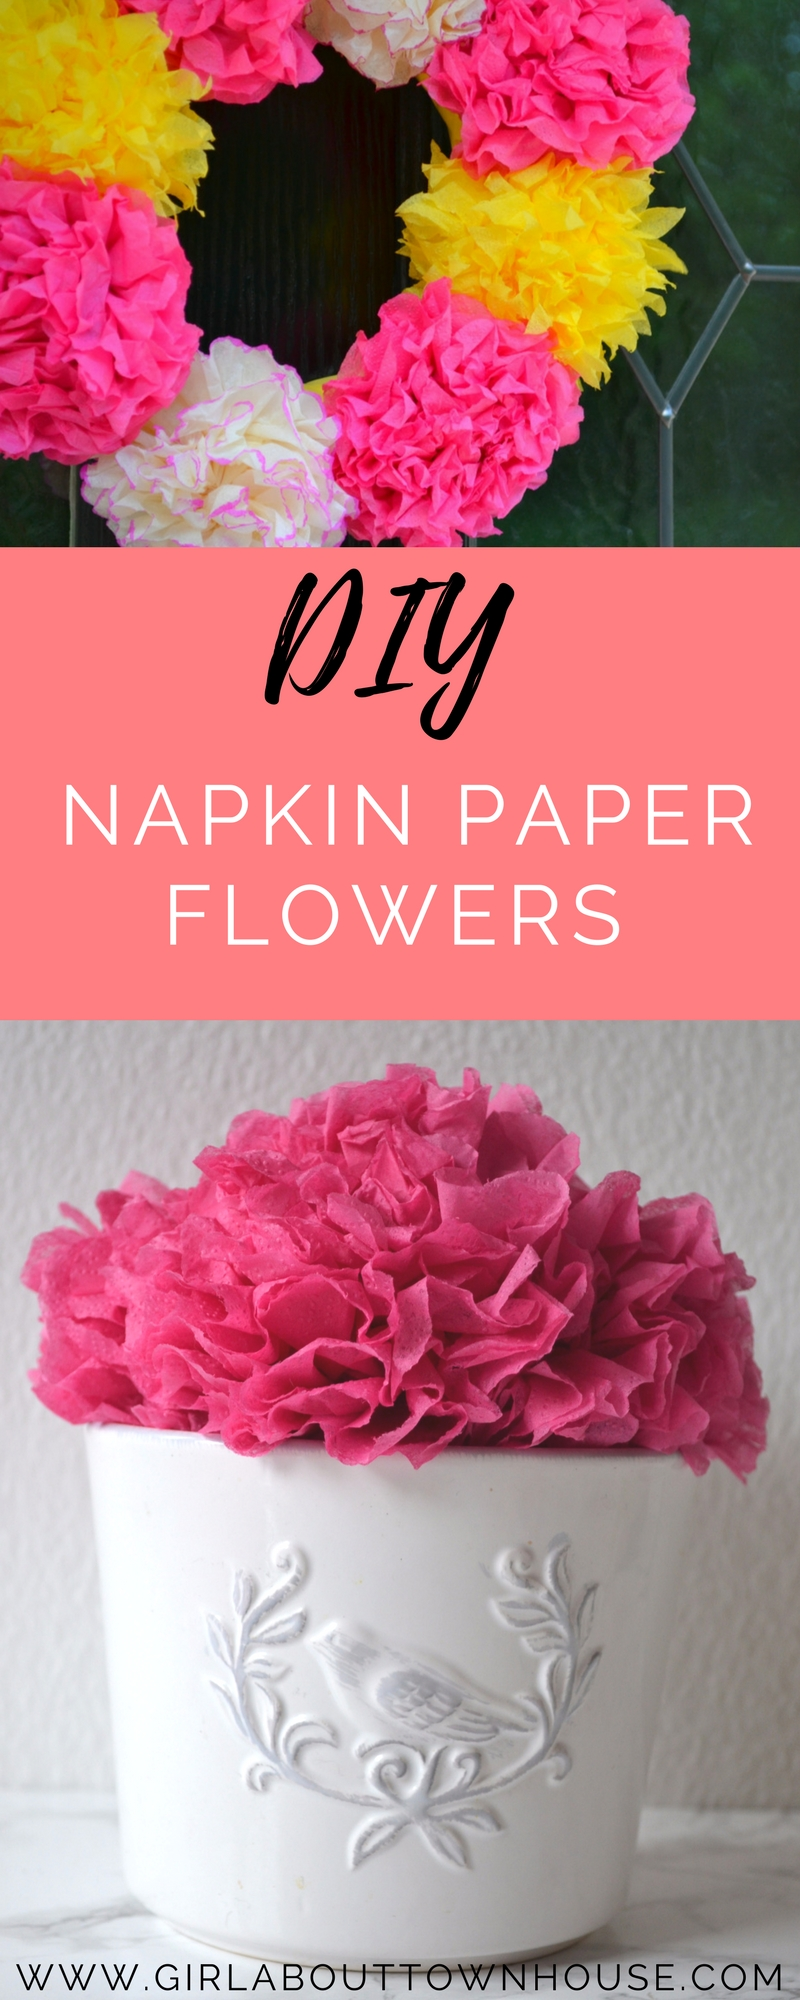 Flower making with napkins wreaths garlands girl about townhouse how to make paper flowers the easy way forget tissue paper and crepe paper mightylinksfo